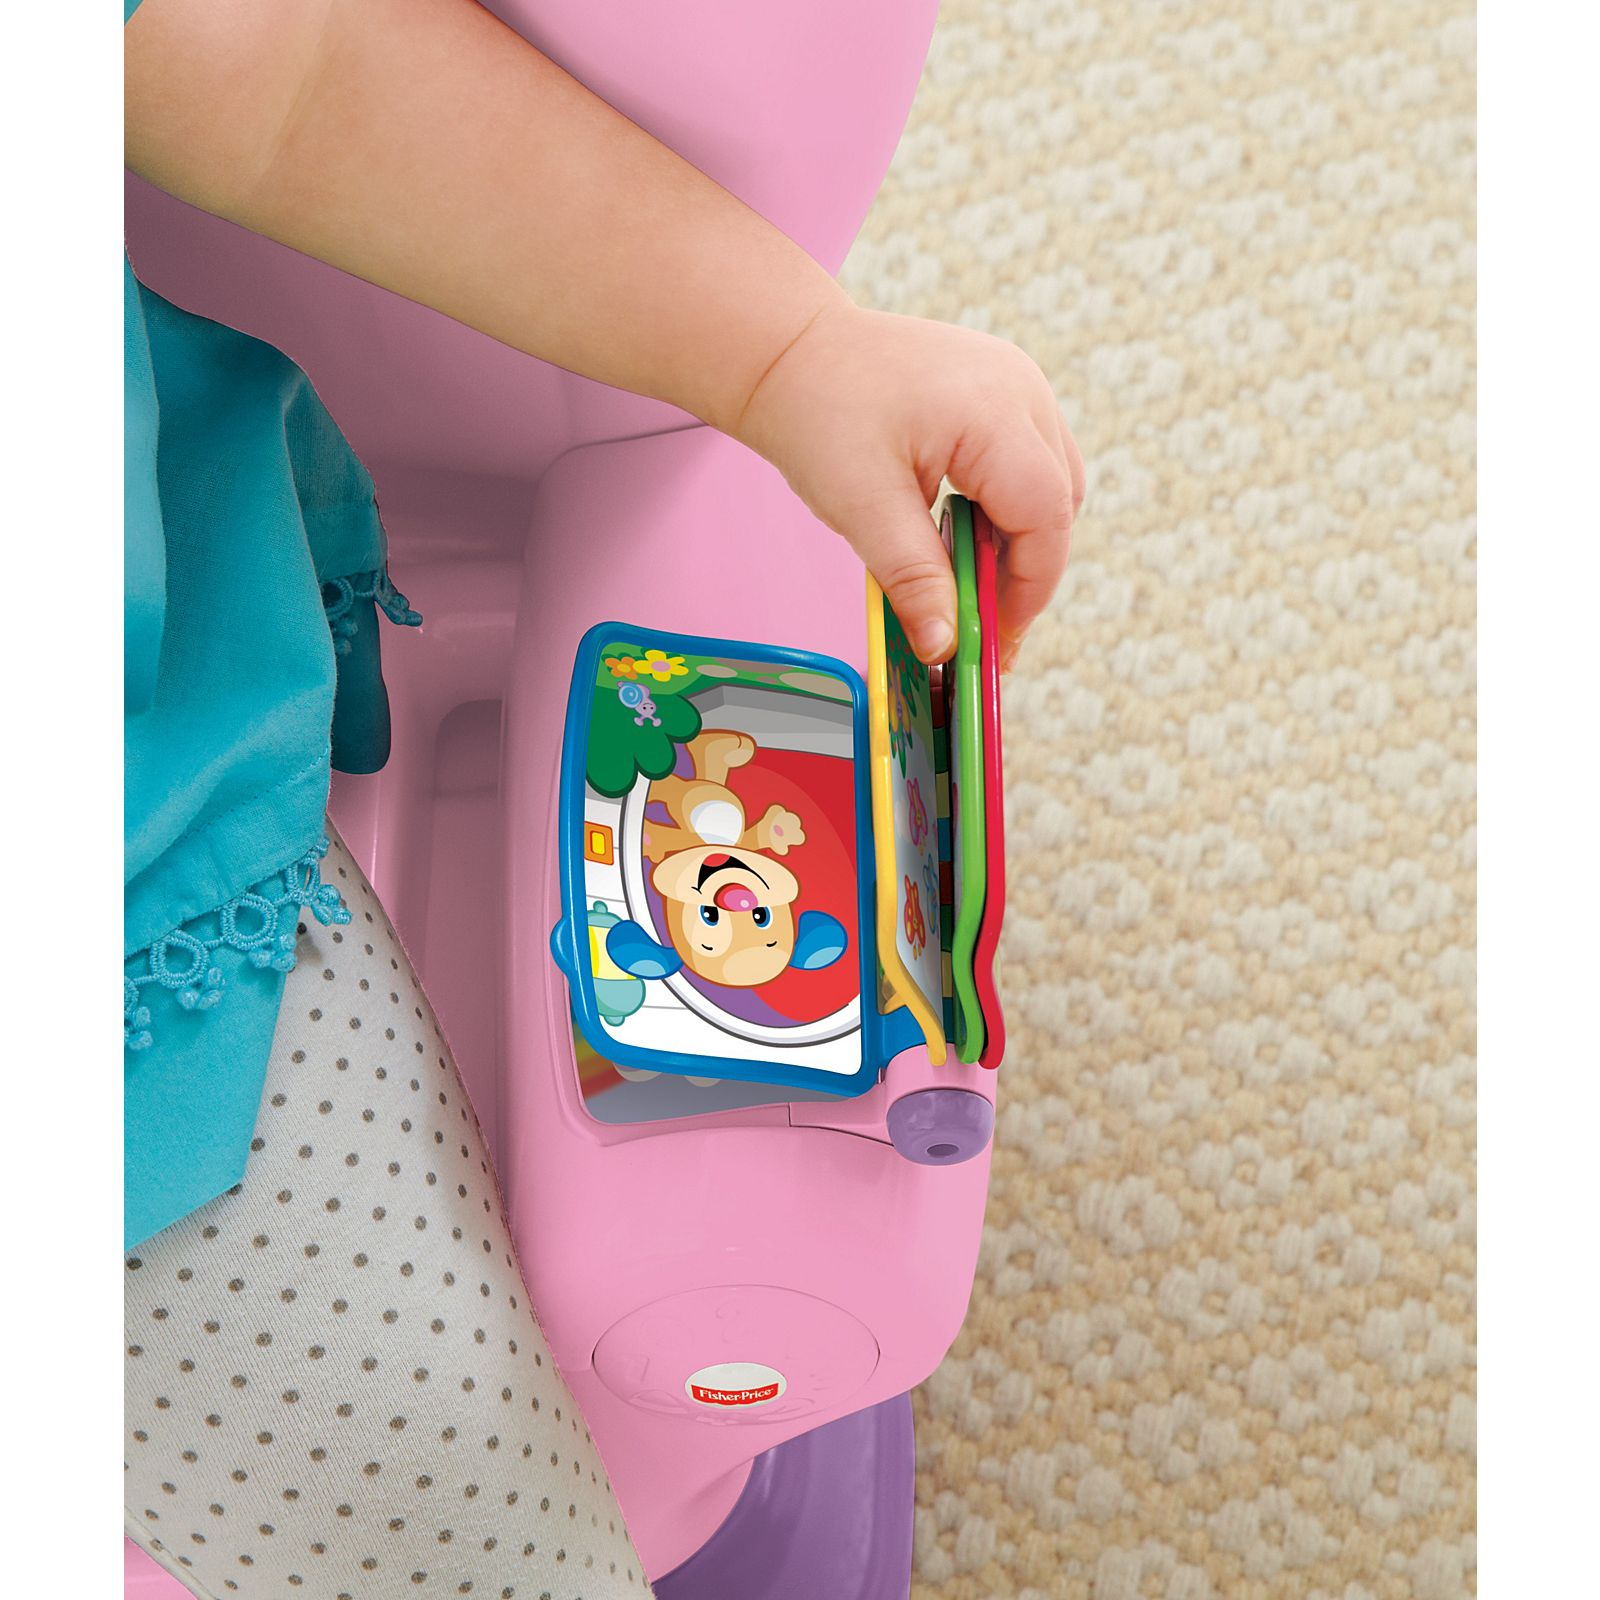 Fisher-Price Laugh /& Learn Smart Stages Chair Pink